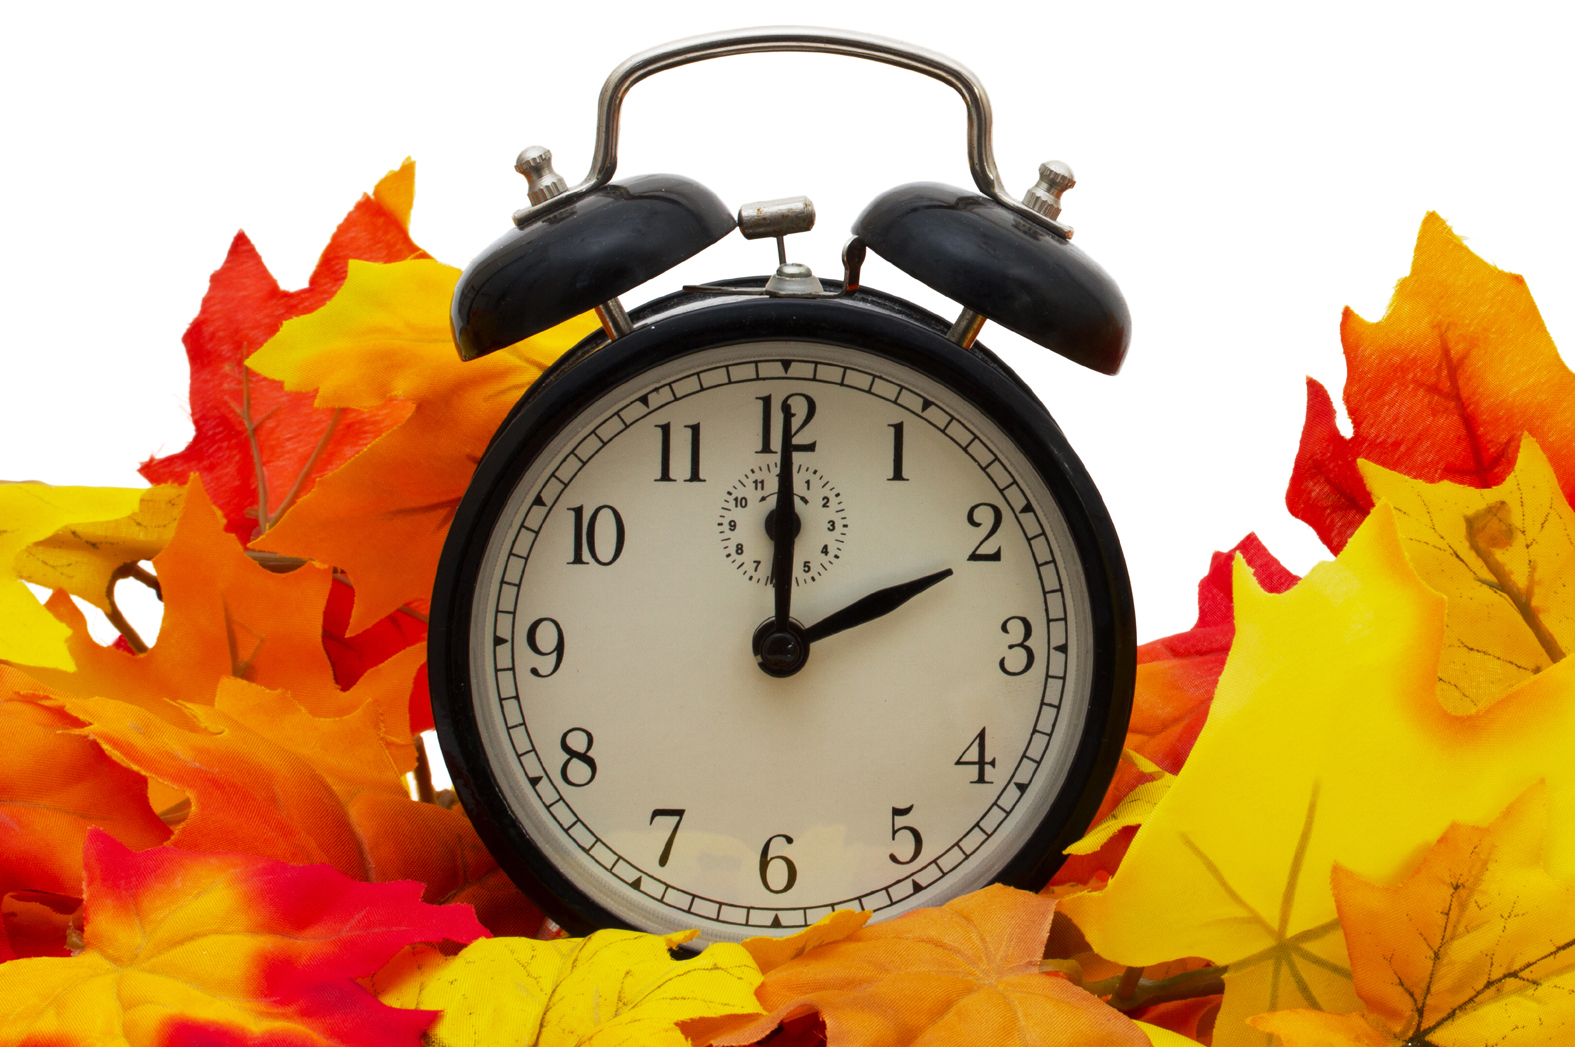 Should the clocks go back later?